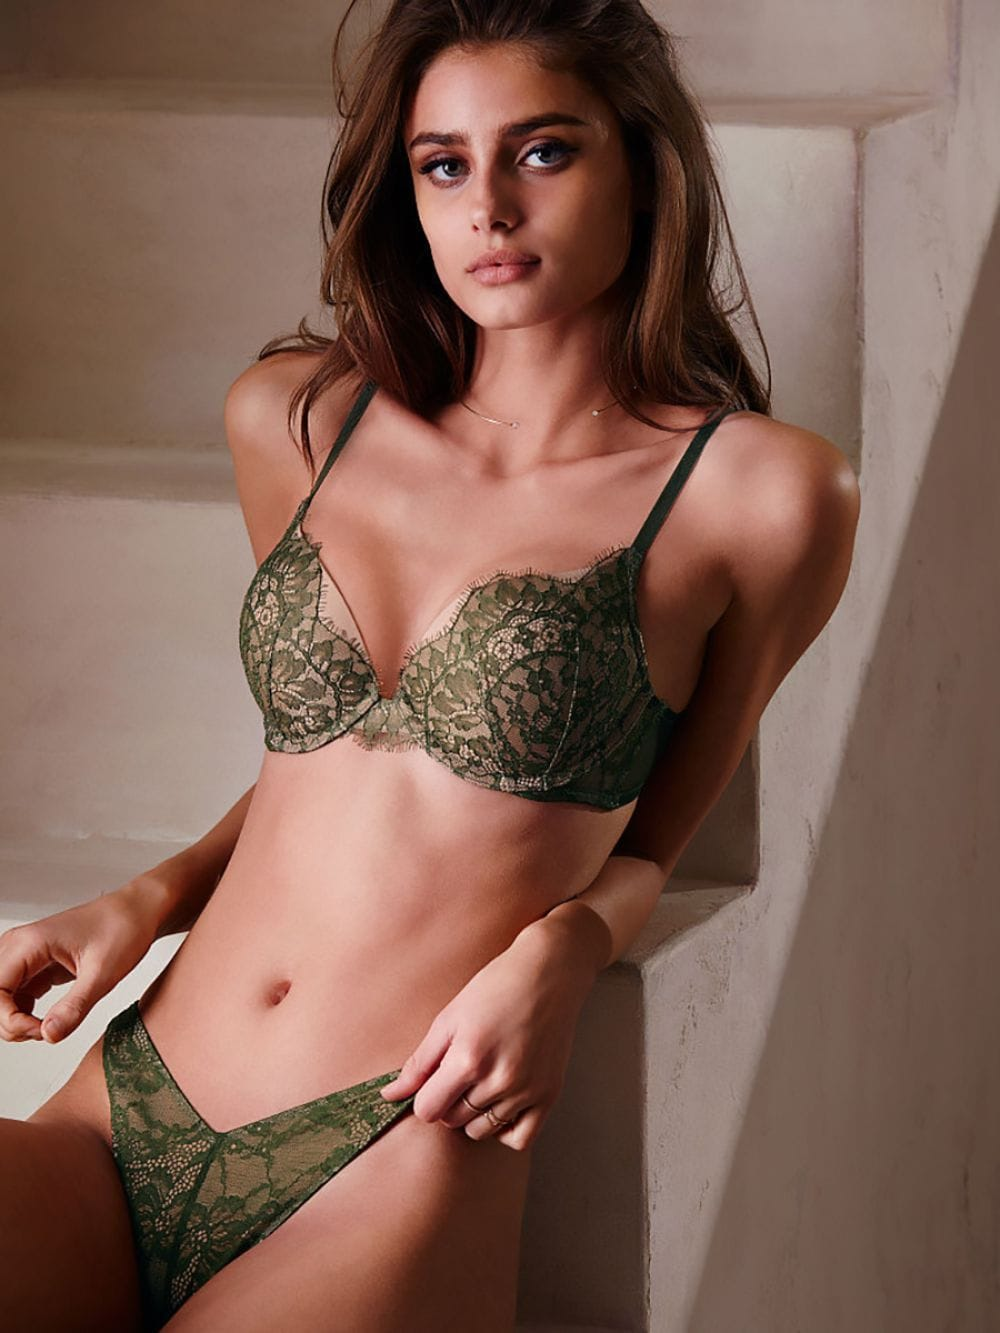 Erotica Taylor Marie Hill nudes (46 foto and video), Sexy, Cleavage, Twitter, lingerie 2006